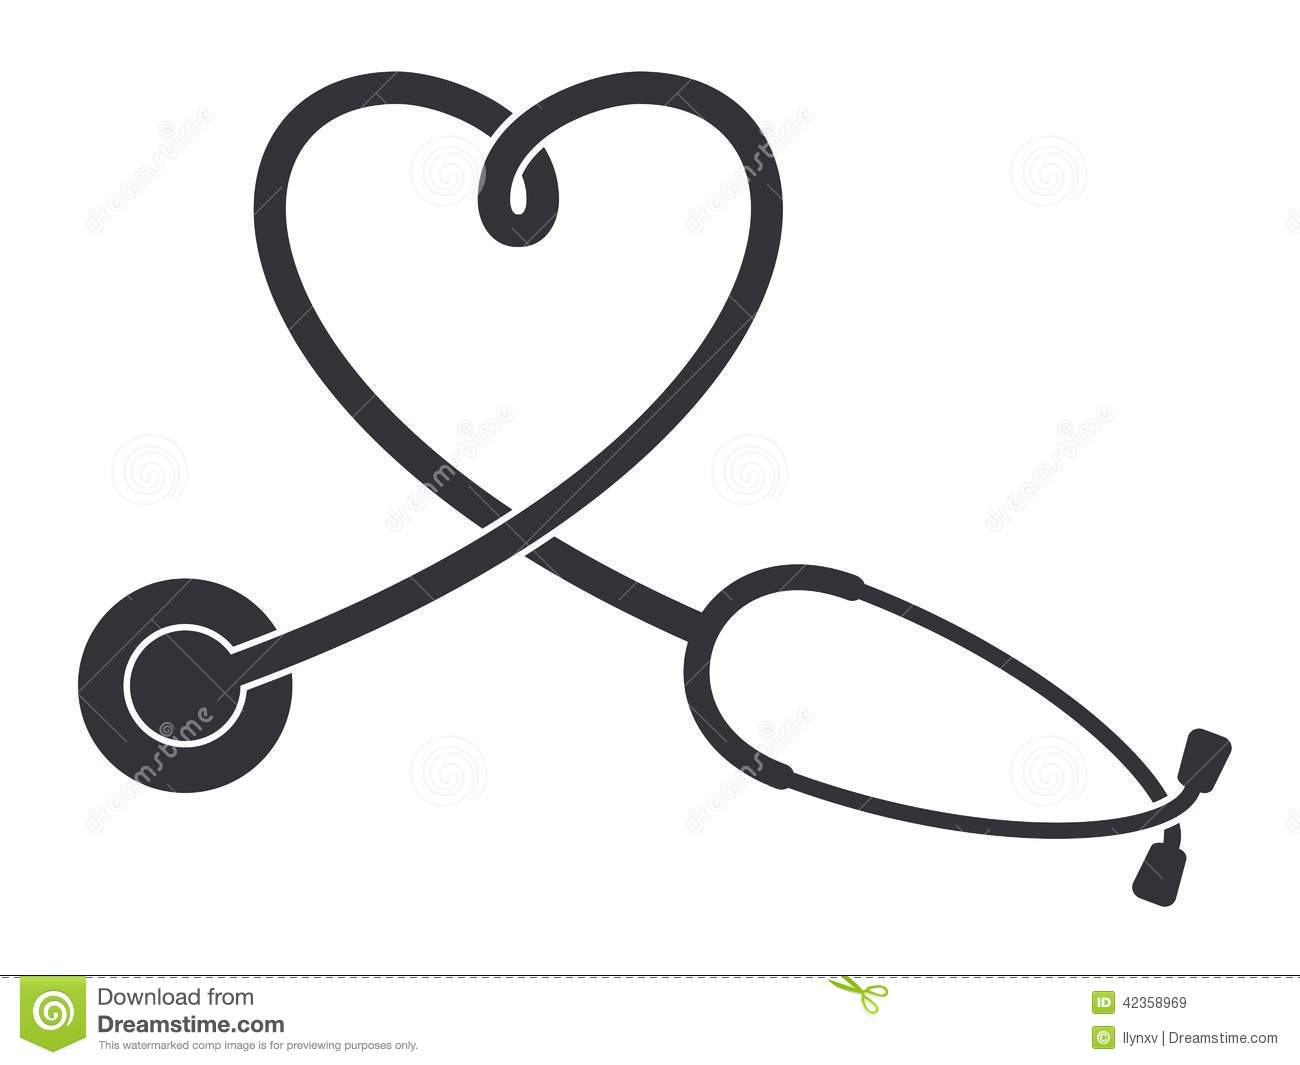 Clip Art Stethoscope Clip Art stethoscope stock illustrations 18048 icon royalty free images